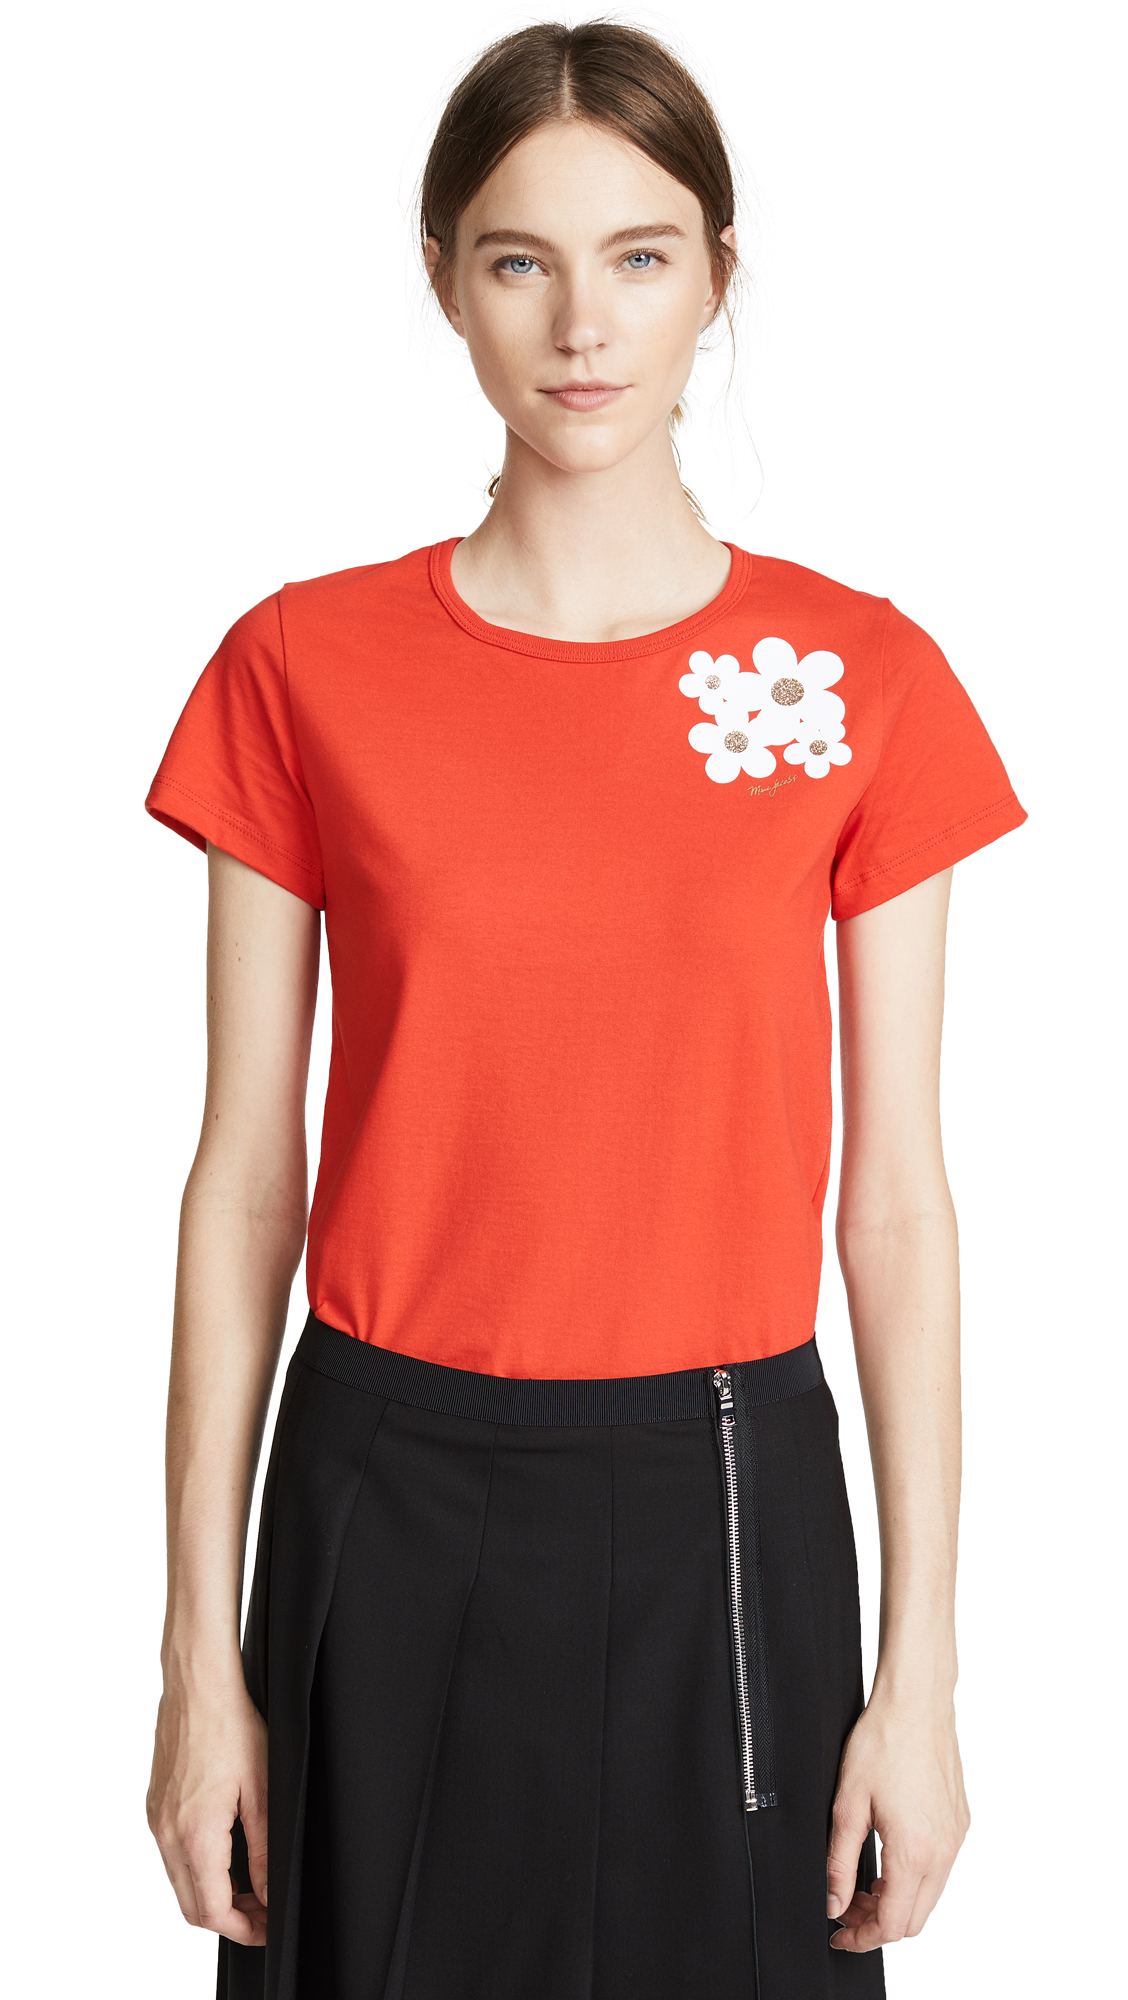 Marc Jacobs Daisy Tee In Red